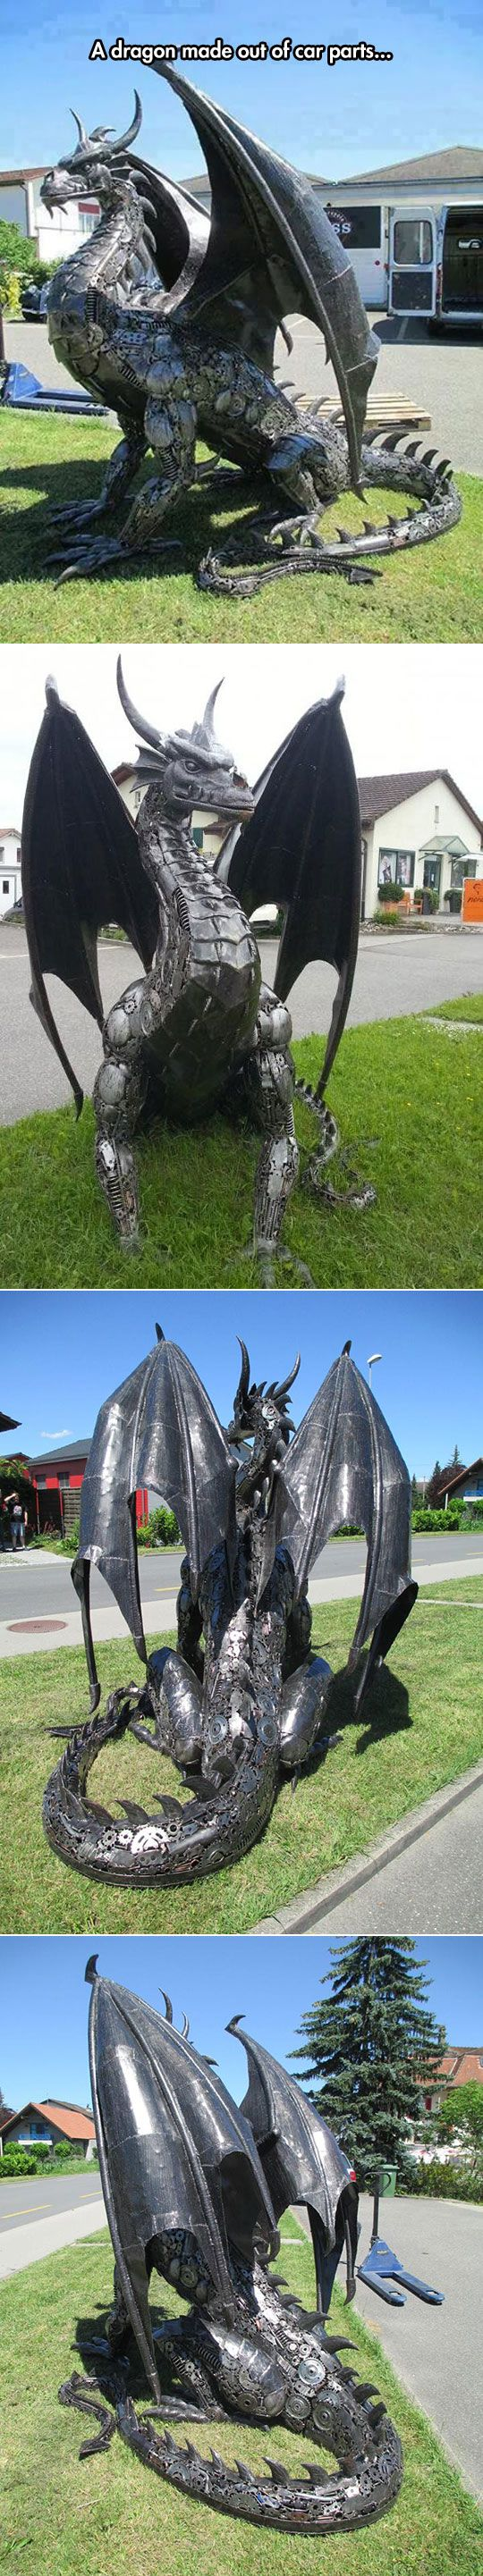 Awesome car part dragon.<- shut up this is an industrial dragon or a metal dragon or something everyone knows you cant make dragons